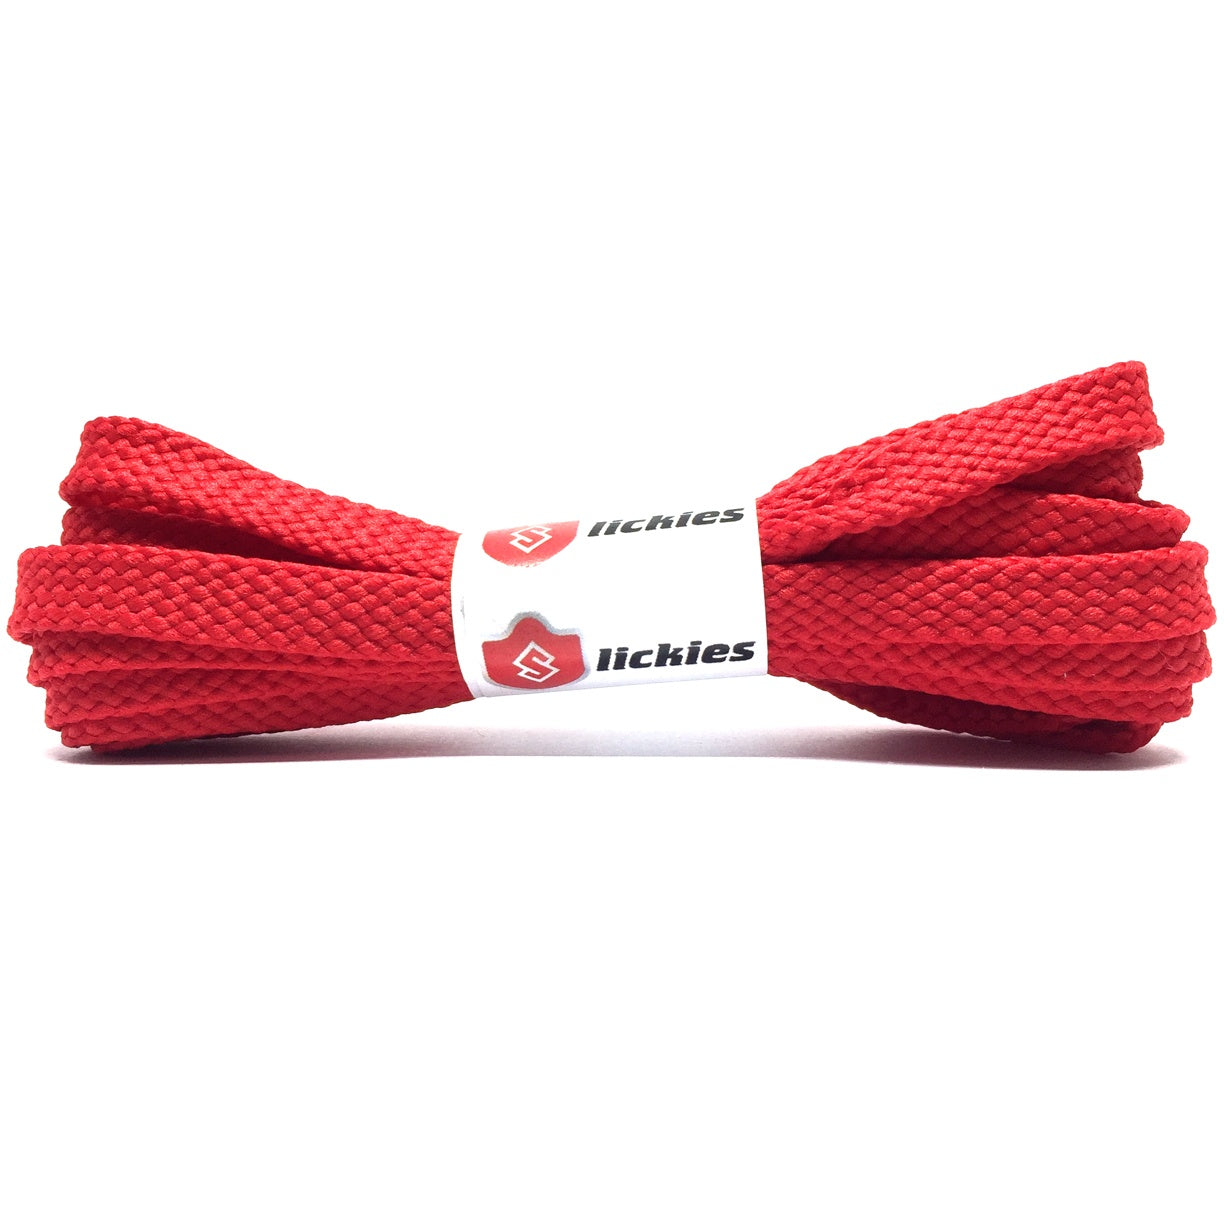 Basics Flat Tubular 8MM Laces - Red